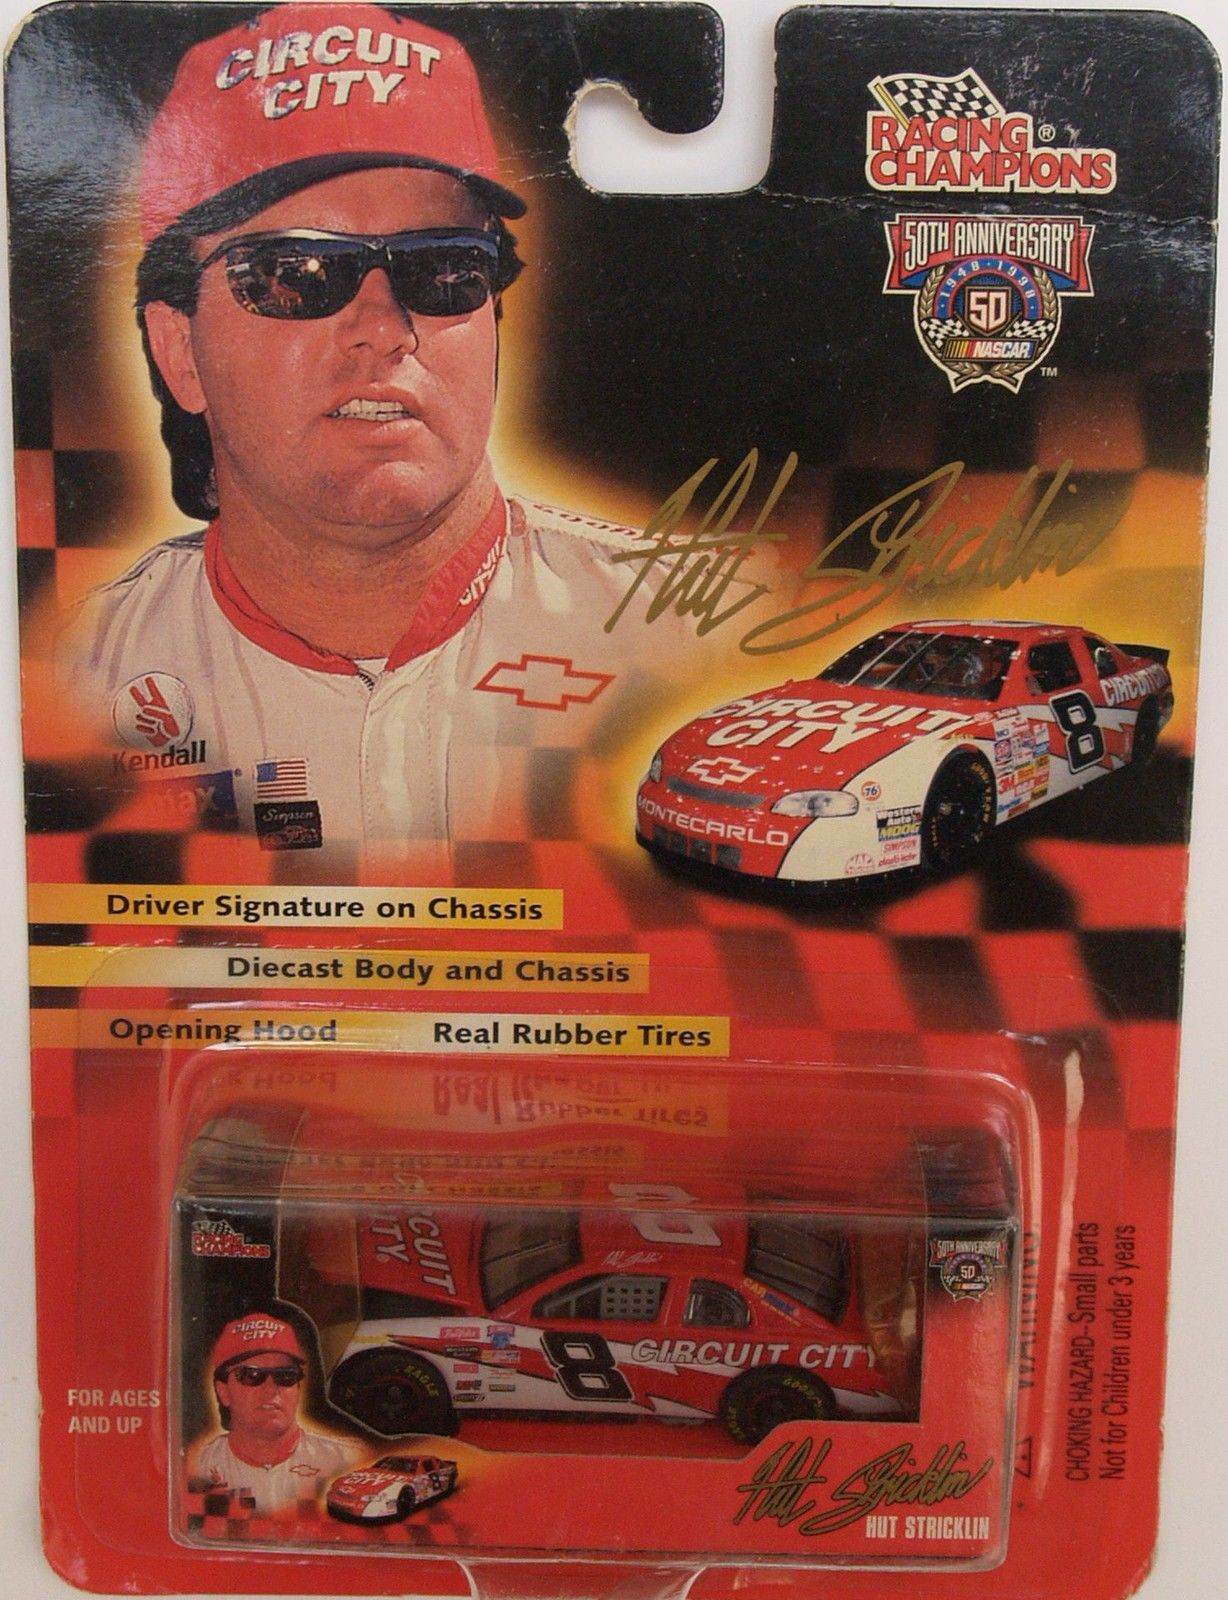 1998 RACING CHAMPIONS - HUT STRICKLIN - #8 CIRCUIT CITY